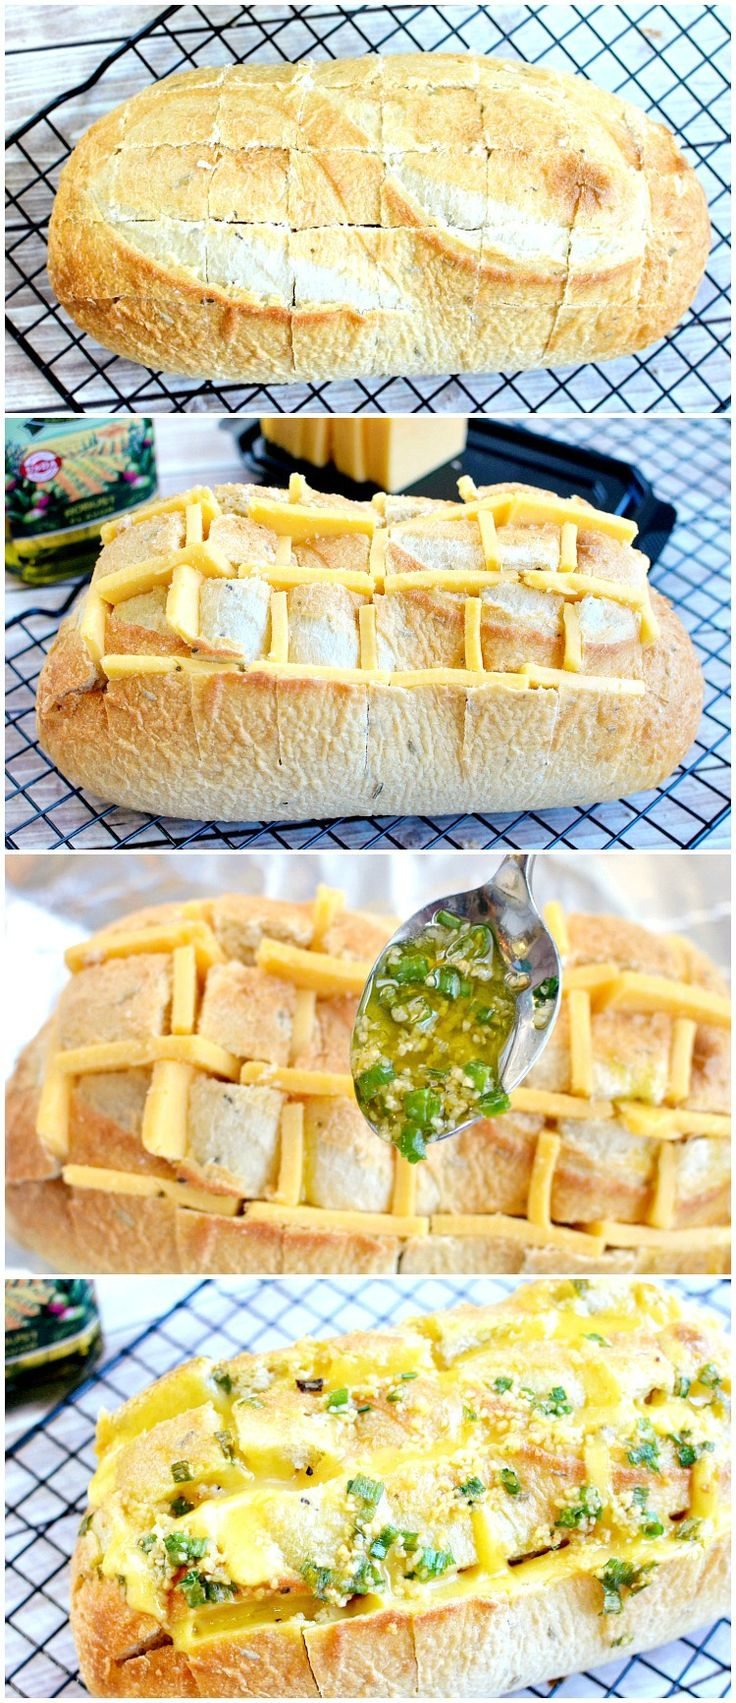 Gouda & Garlic Pull Apart Recipe (also known as Crack Bread!) — So easy to make & ridiculously delicious! Use your favorite cheese & herbs!